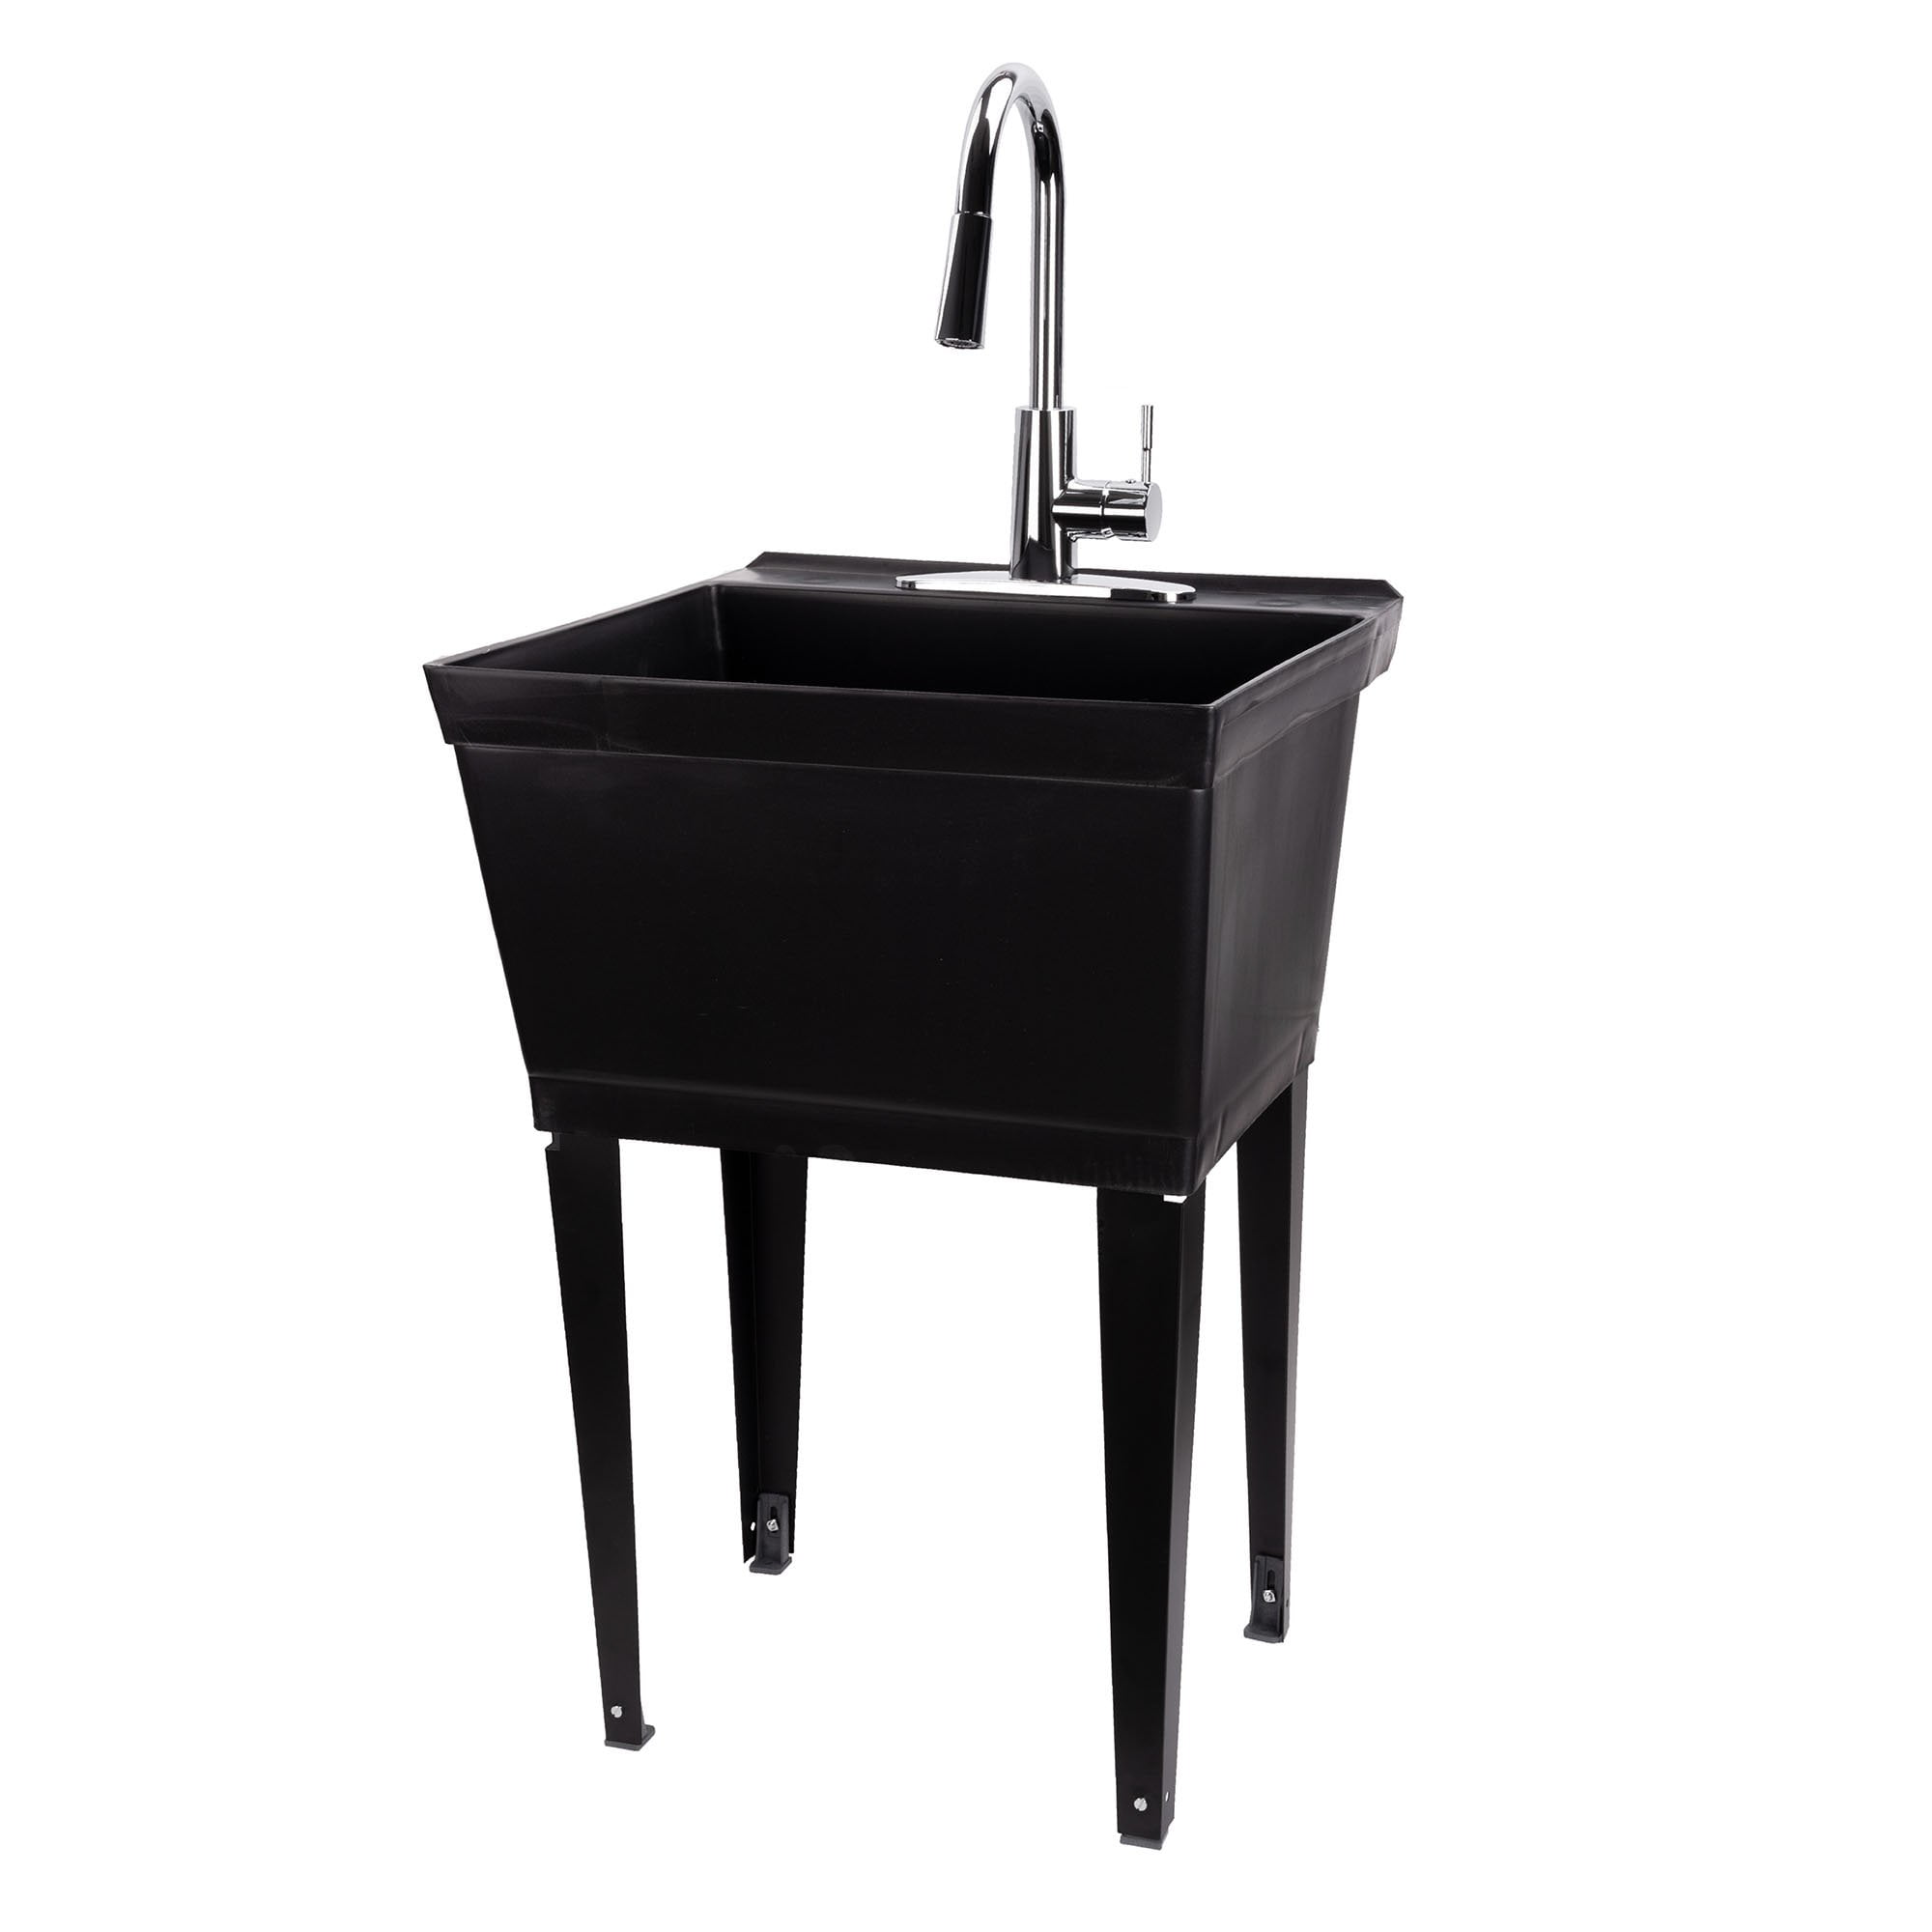 19 Gallon White Utility Sink with Black High Arc Dual Handle Faucet 6509BLK